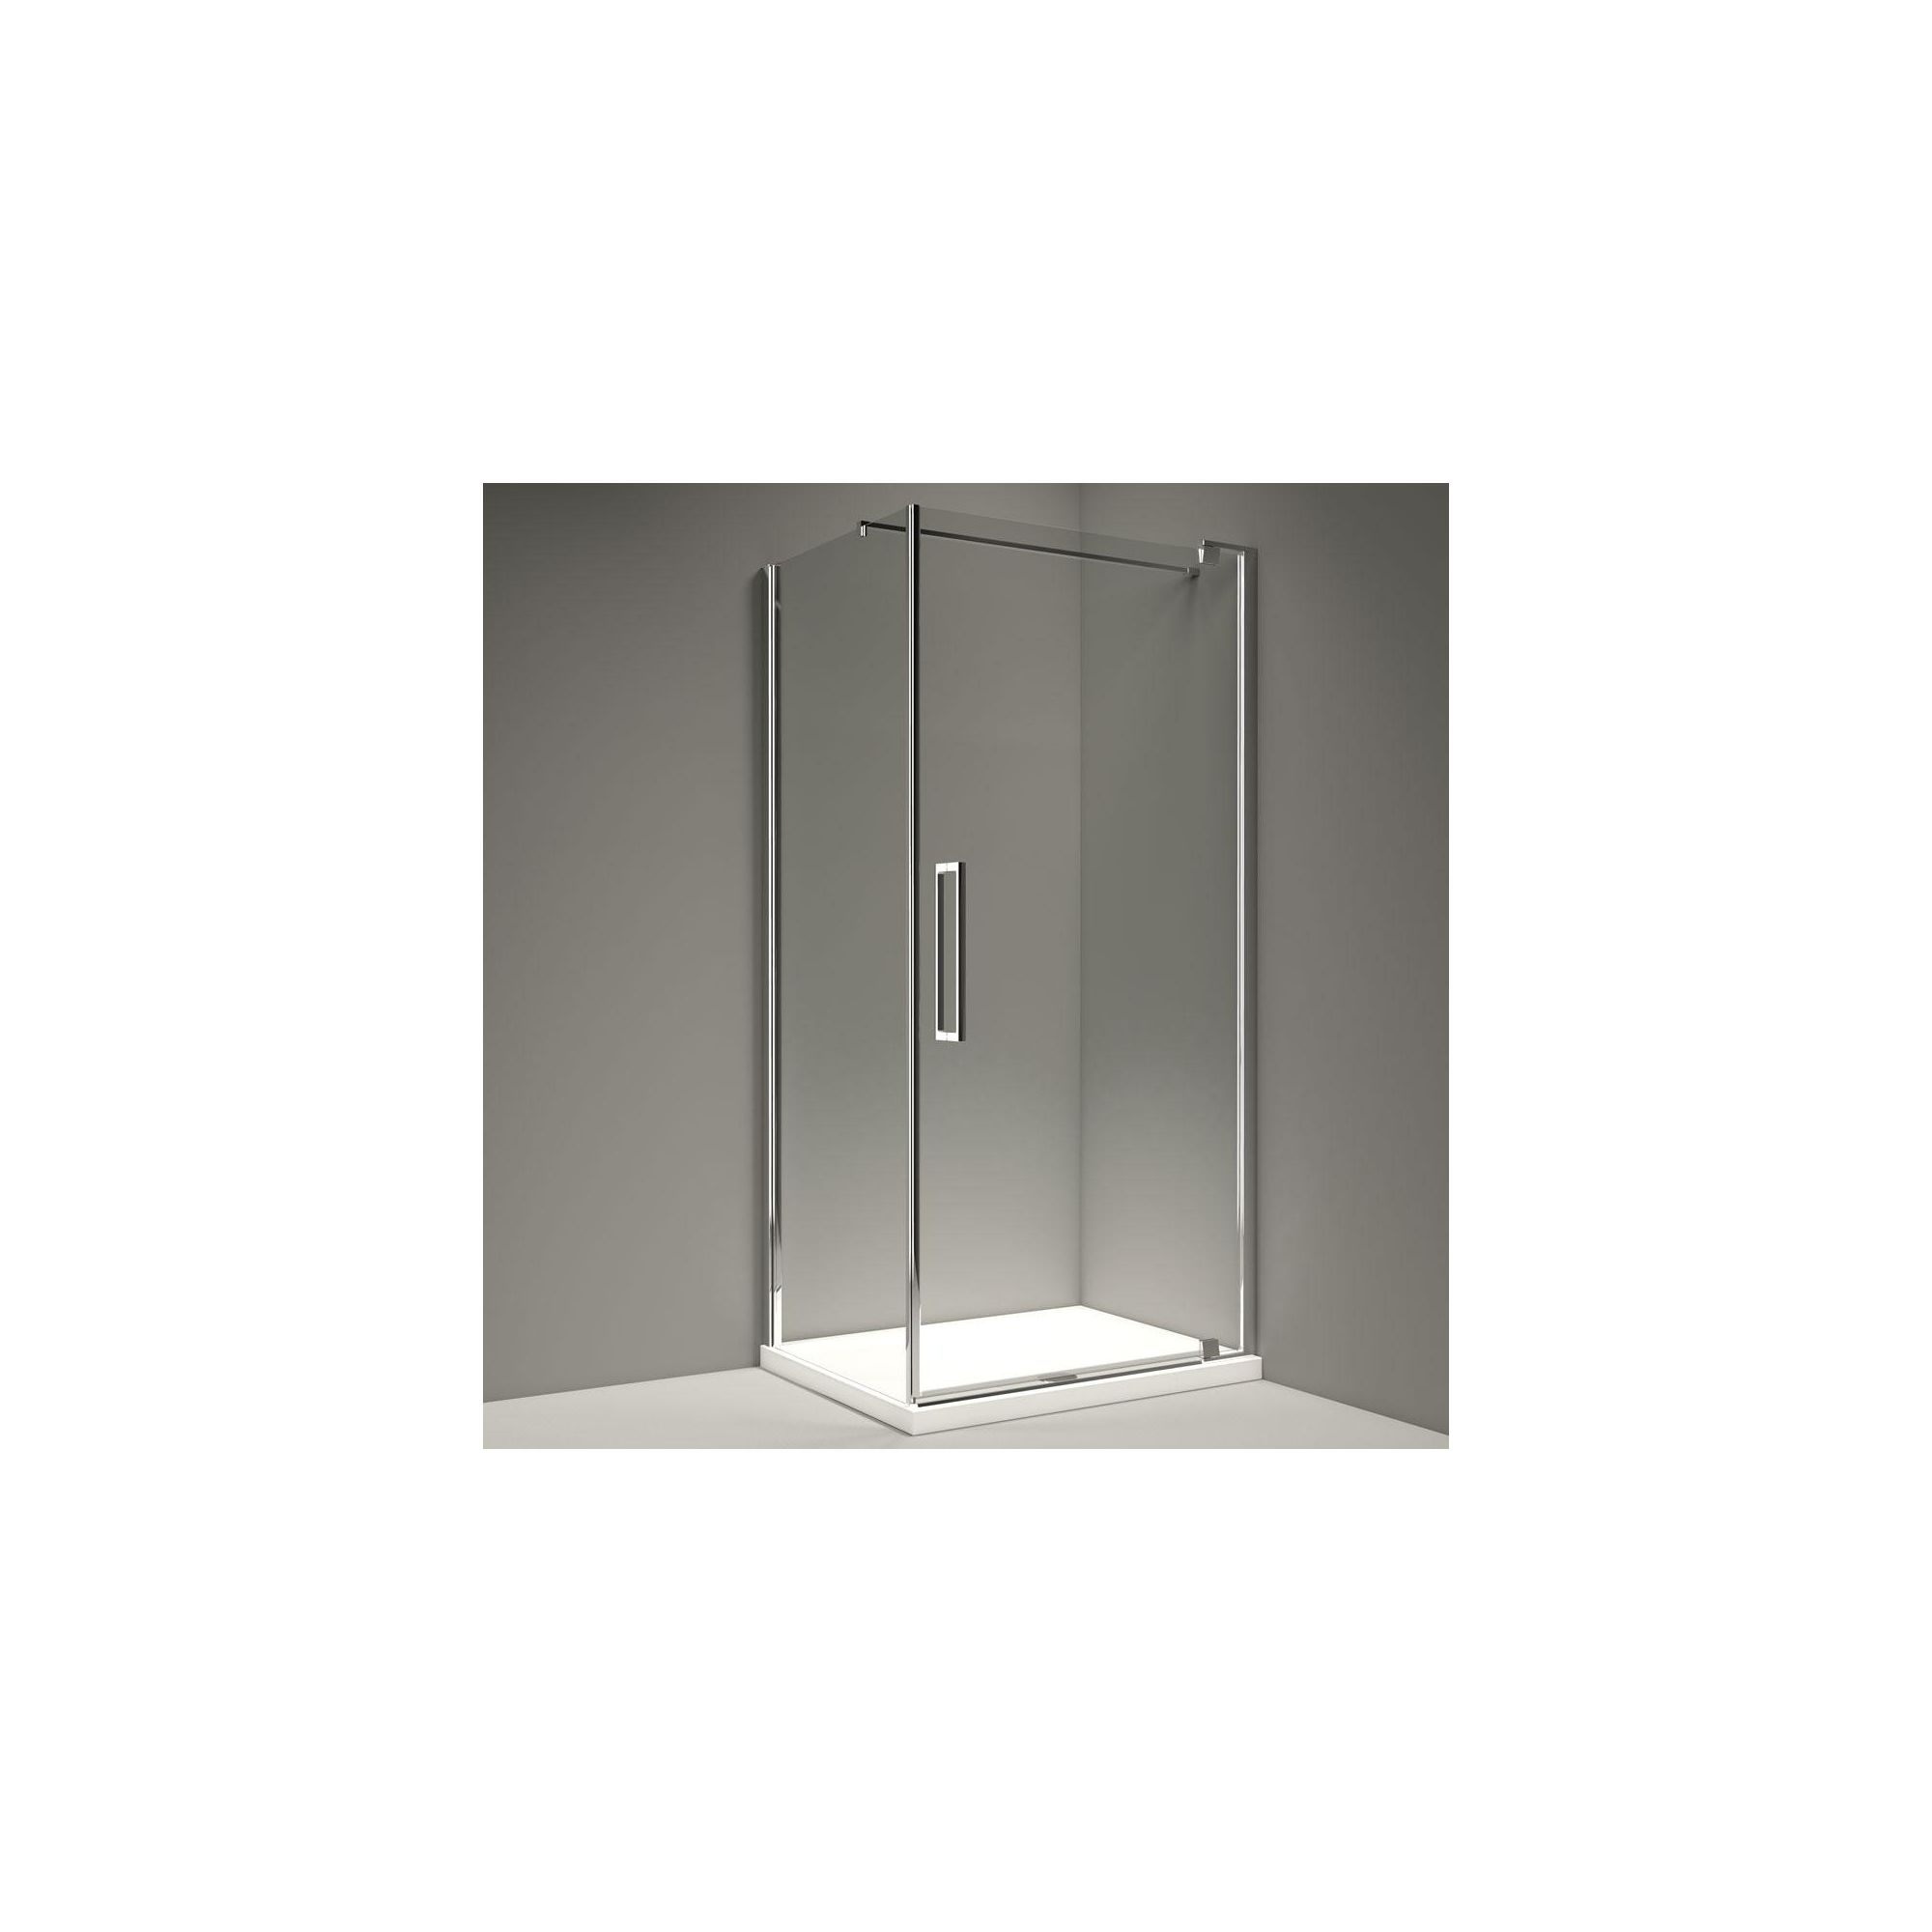 Merlyn Series 10 Pivot Shower Door, 800mm Wide, 10mm Clear Glass at Tesco Direct